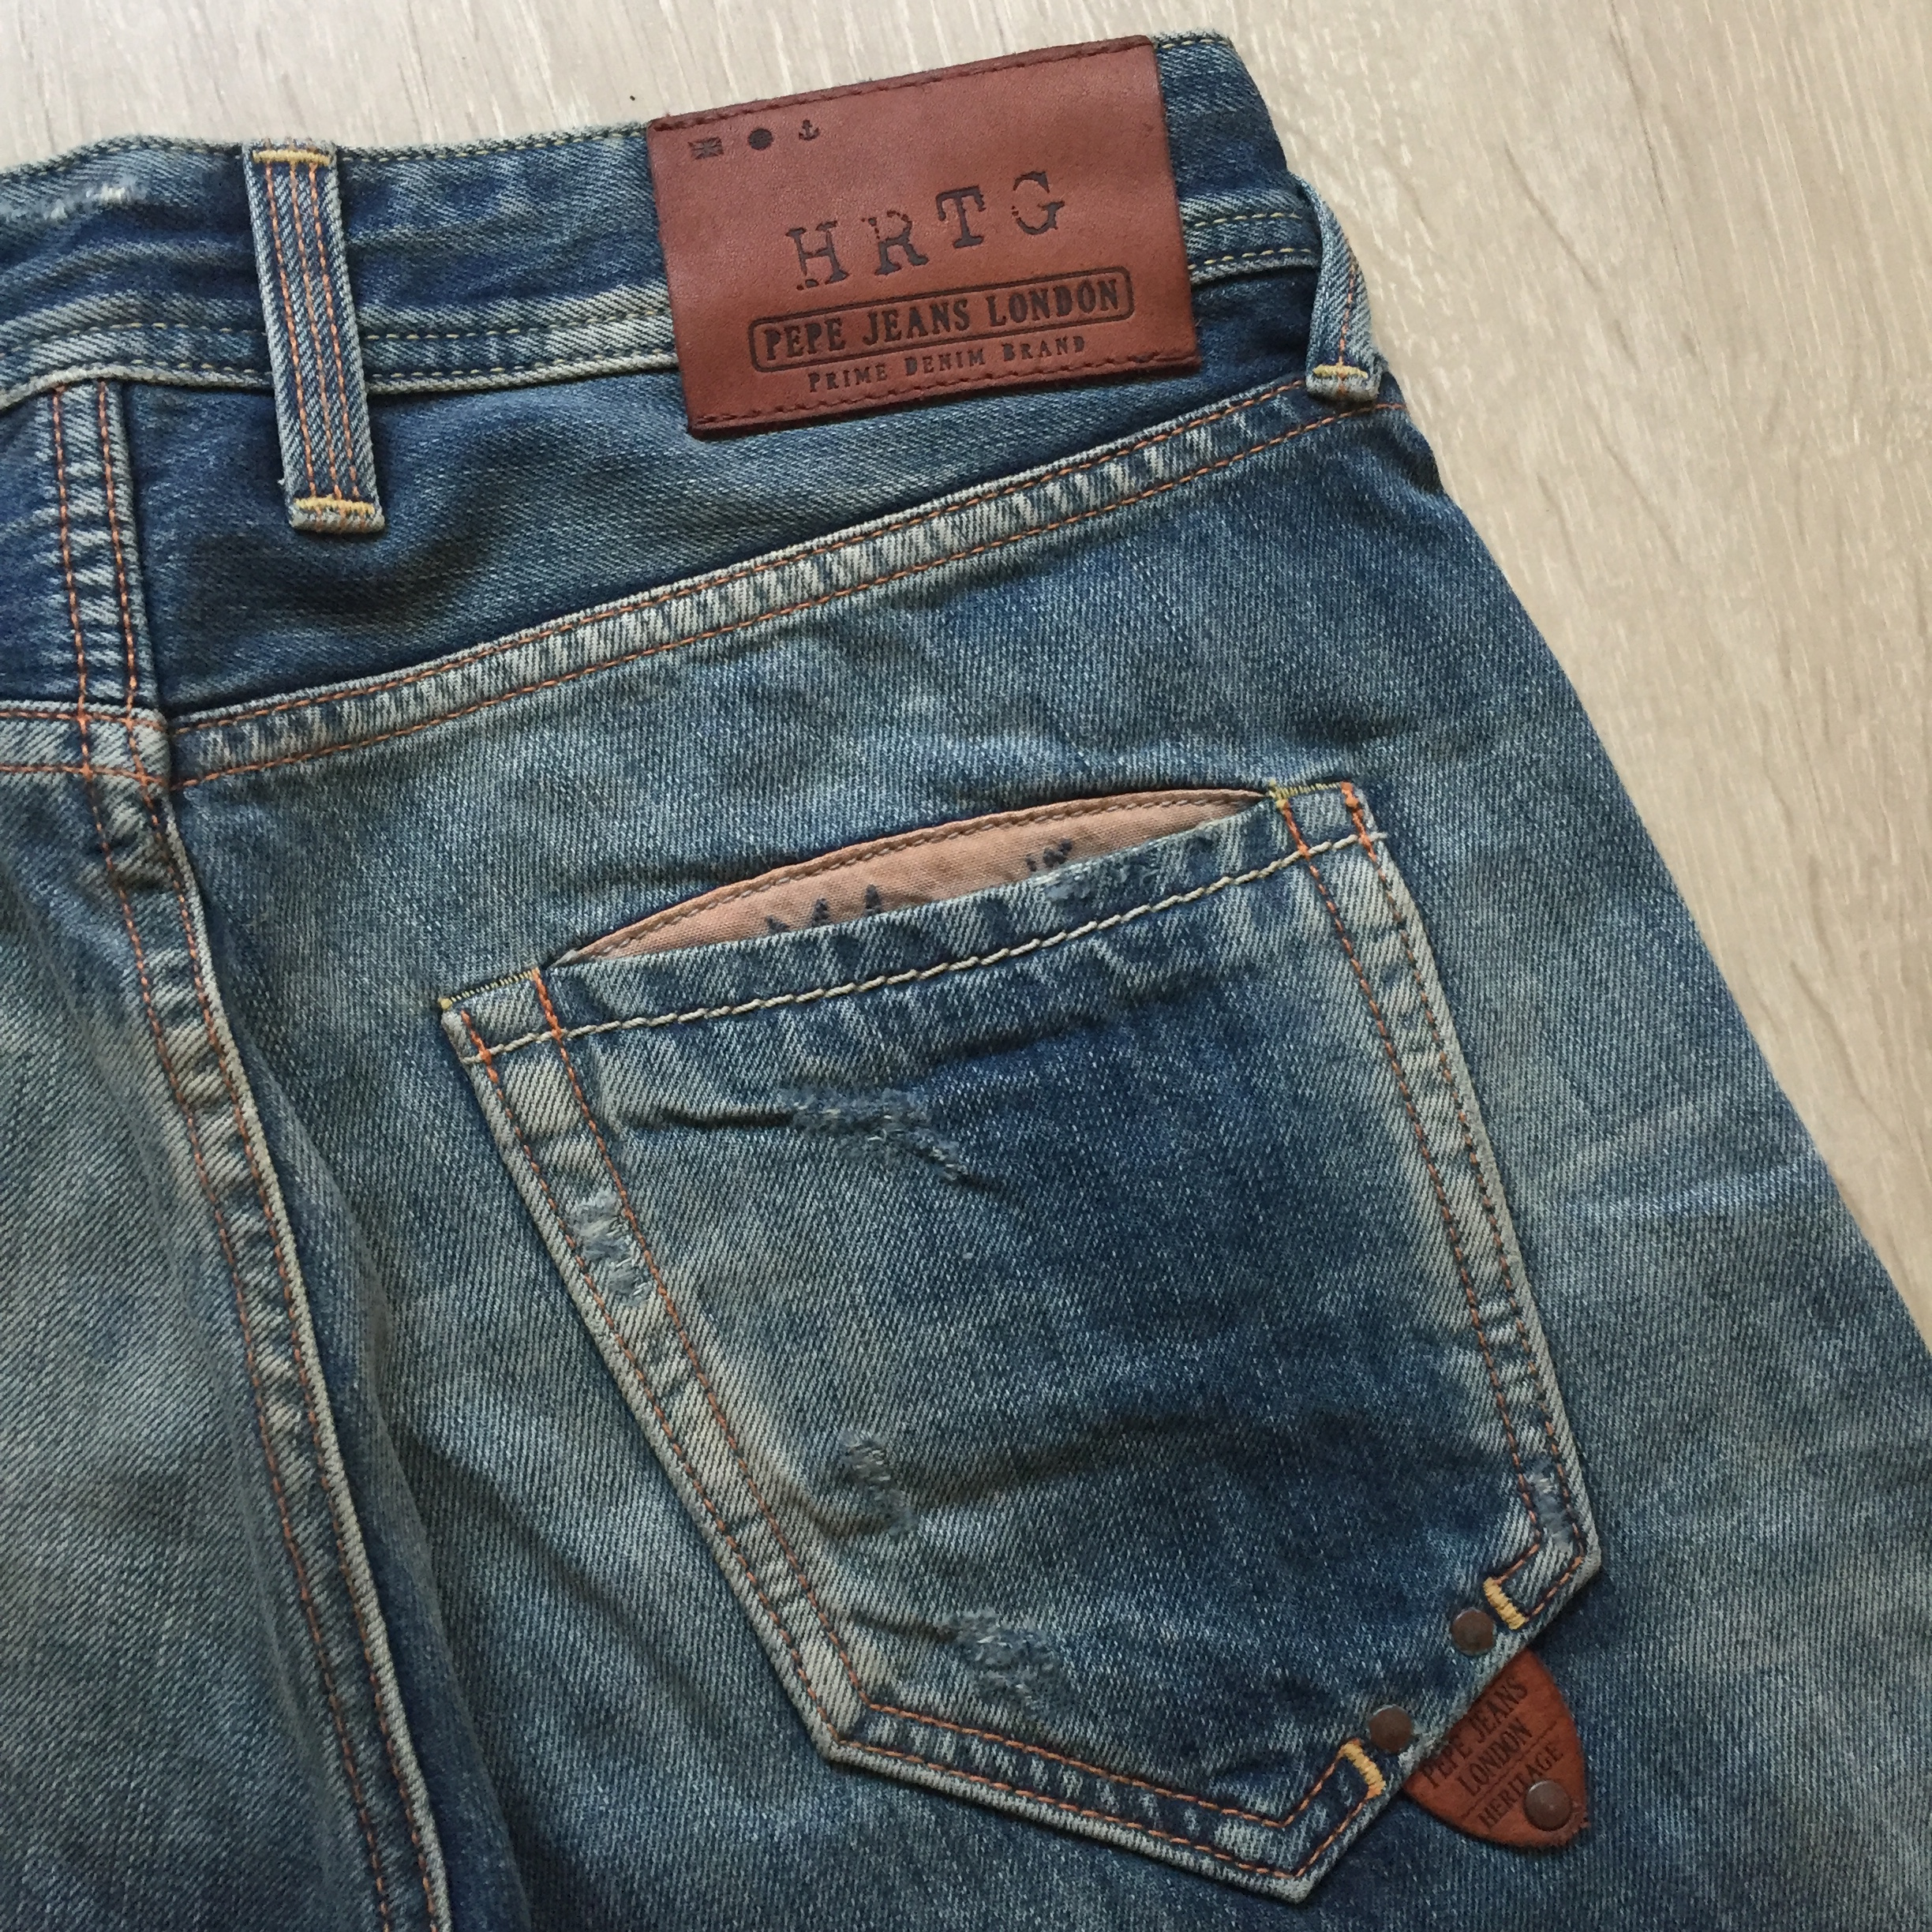 best service 03fb0 db66f Pepe Jeans London - Jeans Wholesale Clearance Stocklot